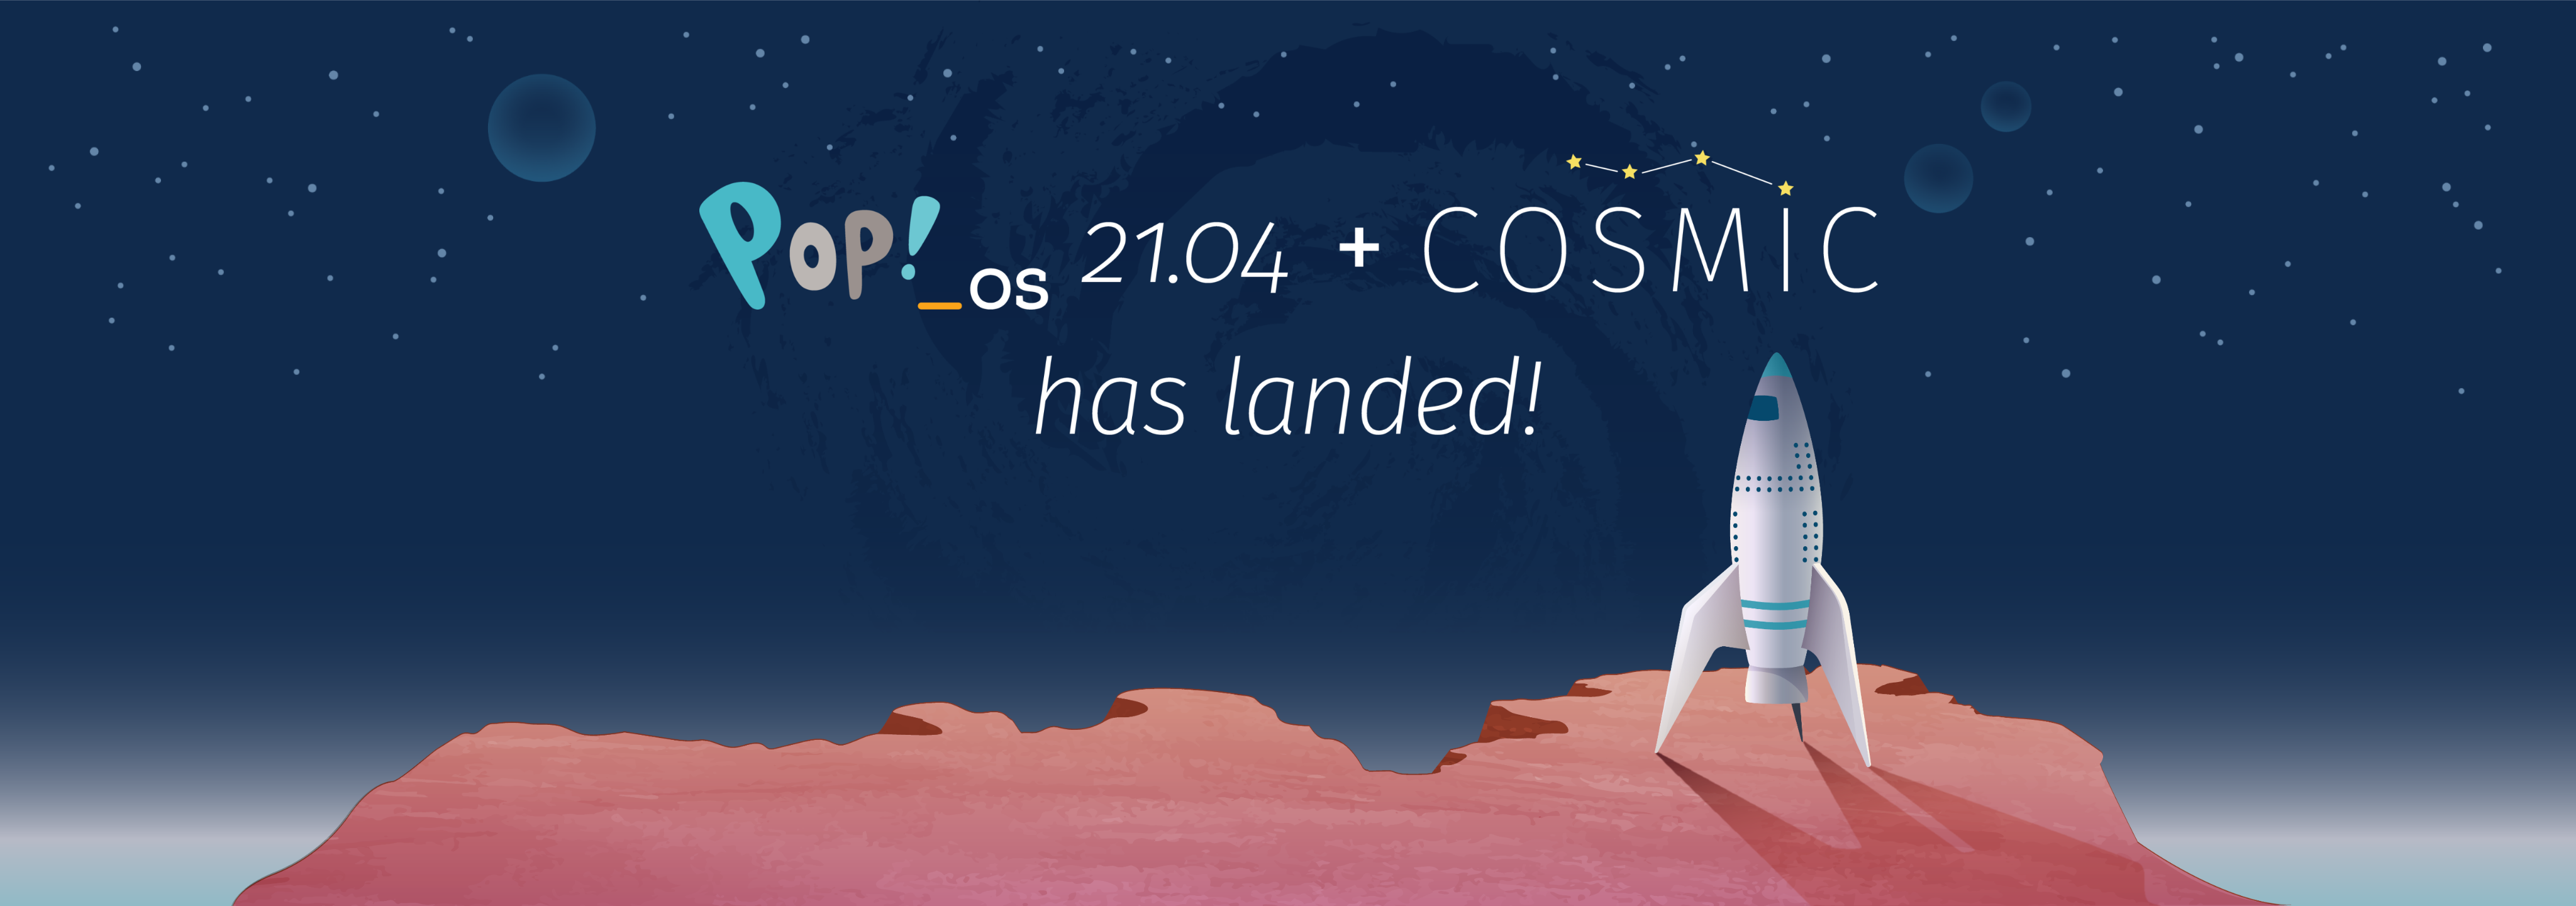 Pop OS with COSMIC has landed!